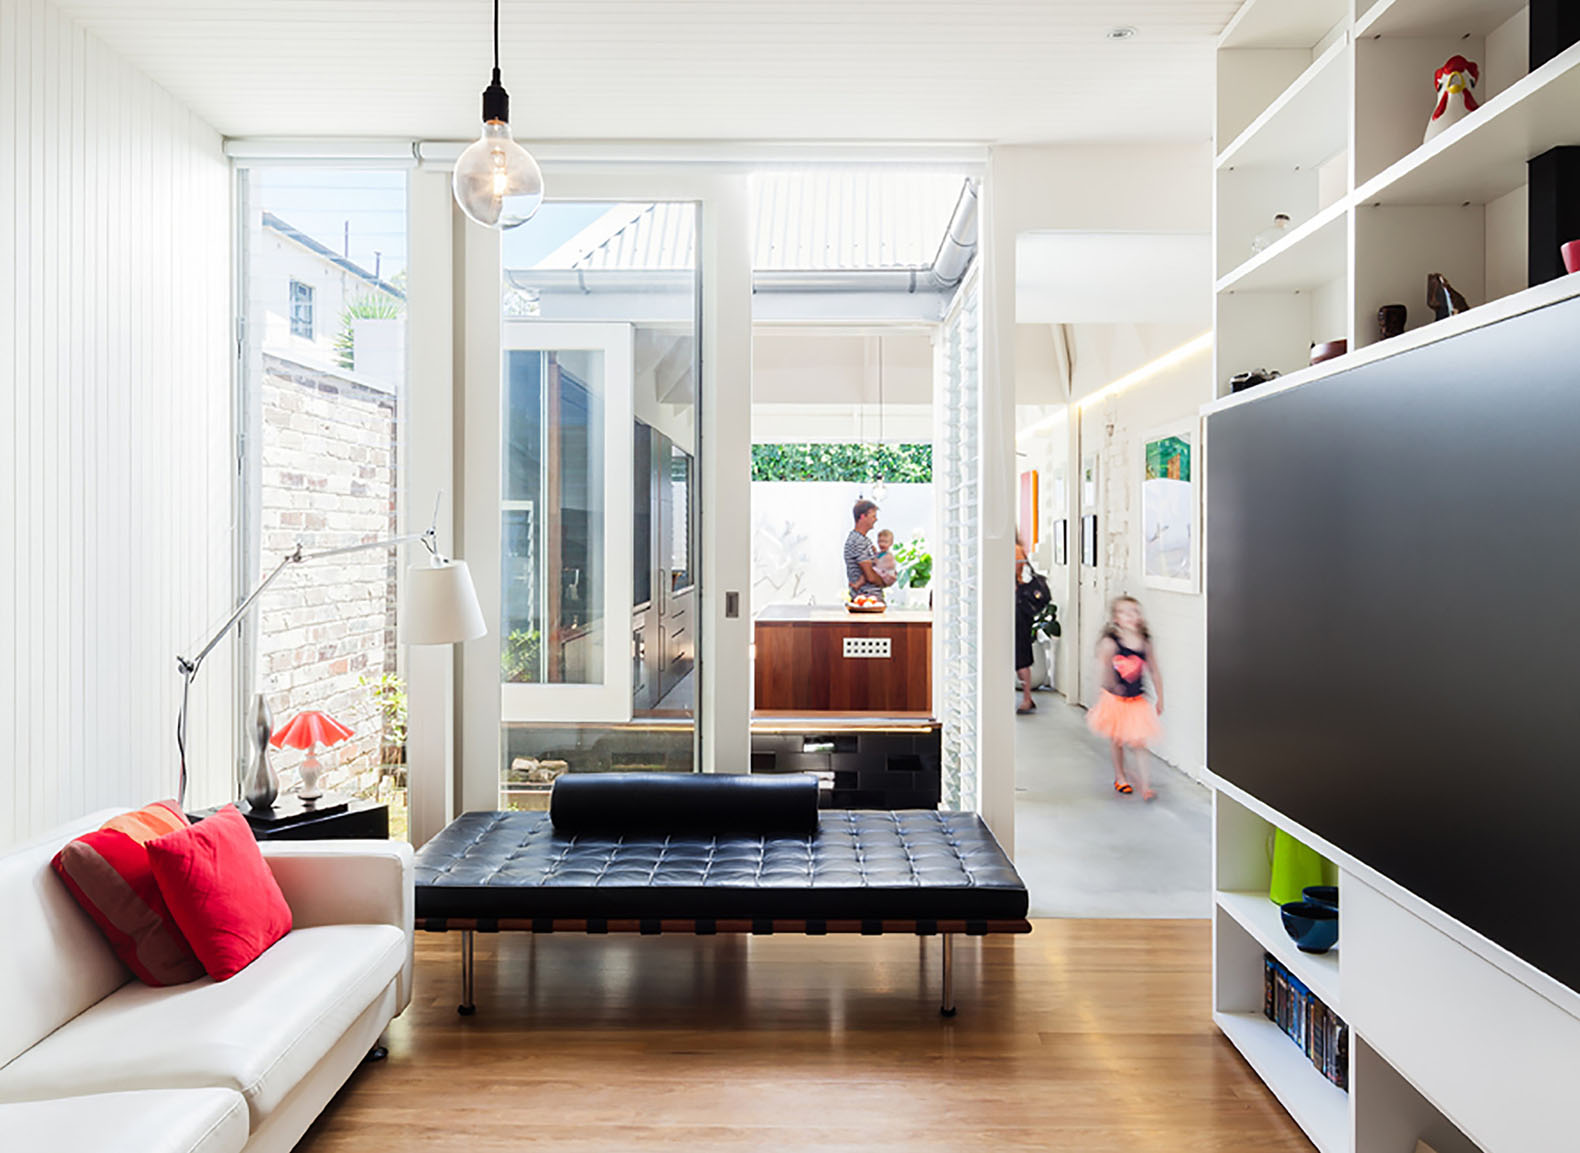 light cannon house in sydney references the sculptural. Black Bedroom Furniture Sets. Home Design Ideas